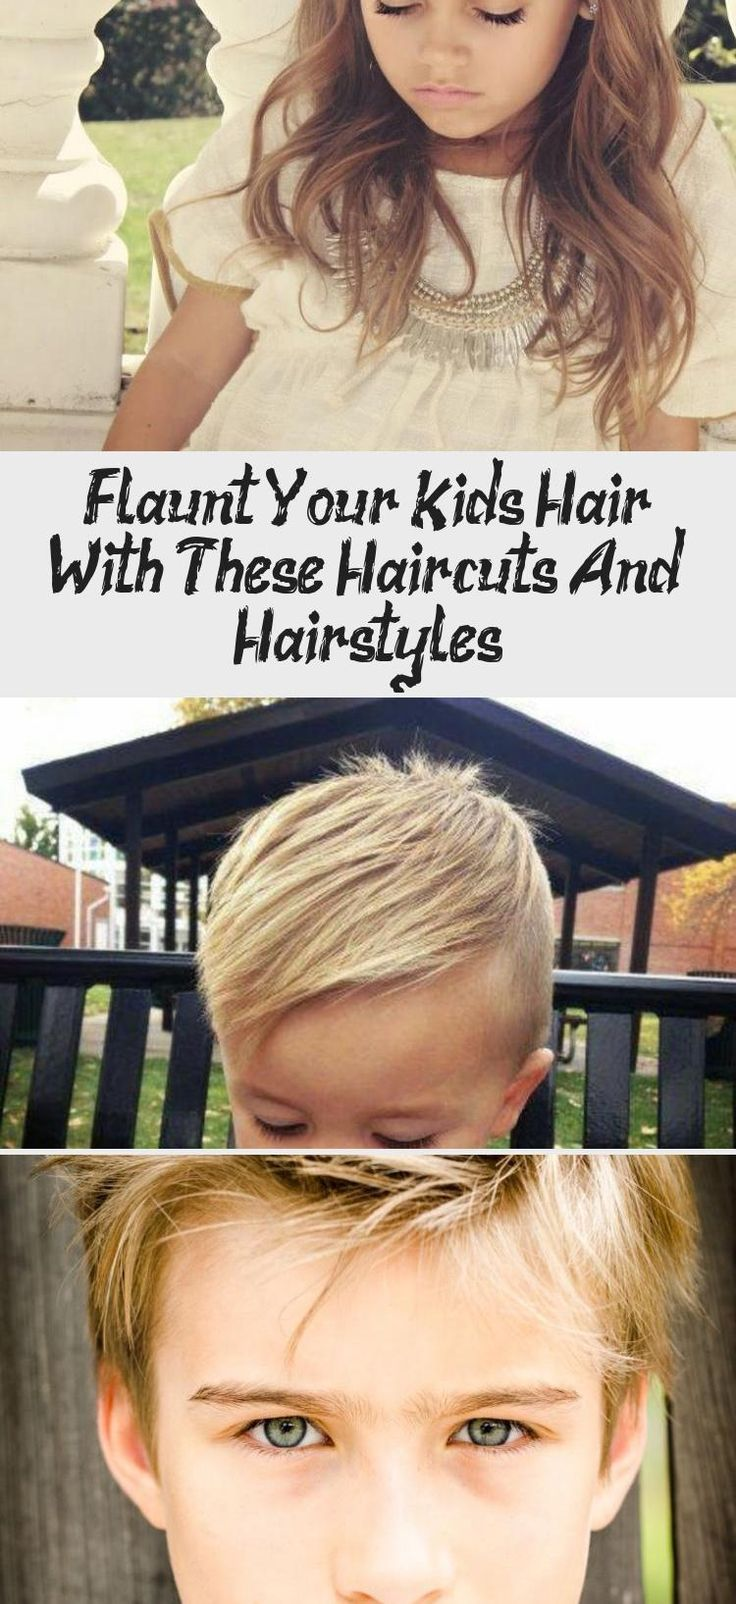 cool   Flaunt your kids' hair with these haircuts and hairstyles #babyhairstylesBraids #Naturalbabyhairstyles #Mixedbabyhairstyles #babyhairstylesWithRubberbands #babyhairstylesFirstHaircut